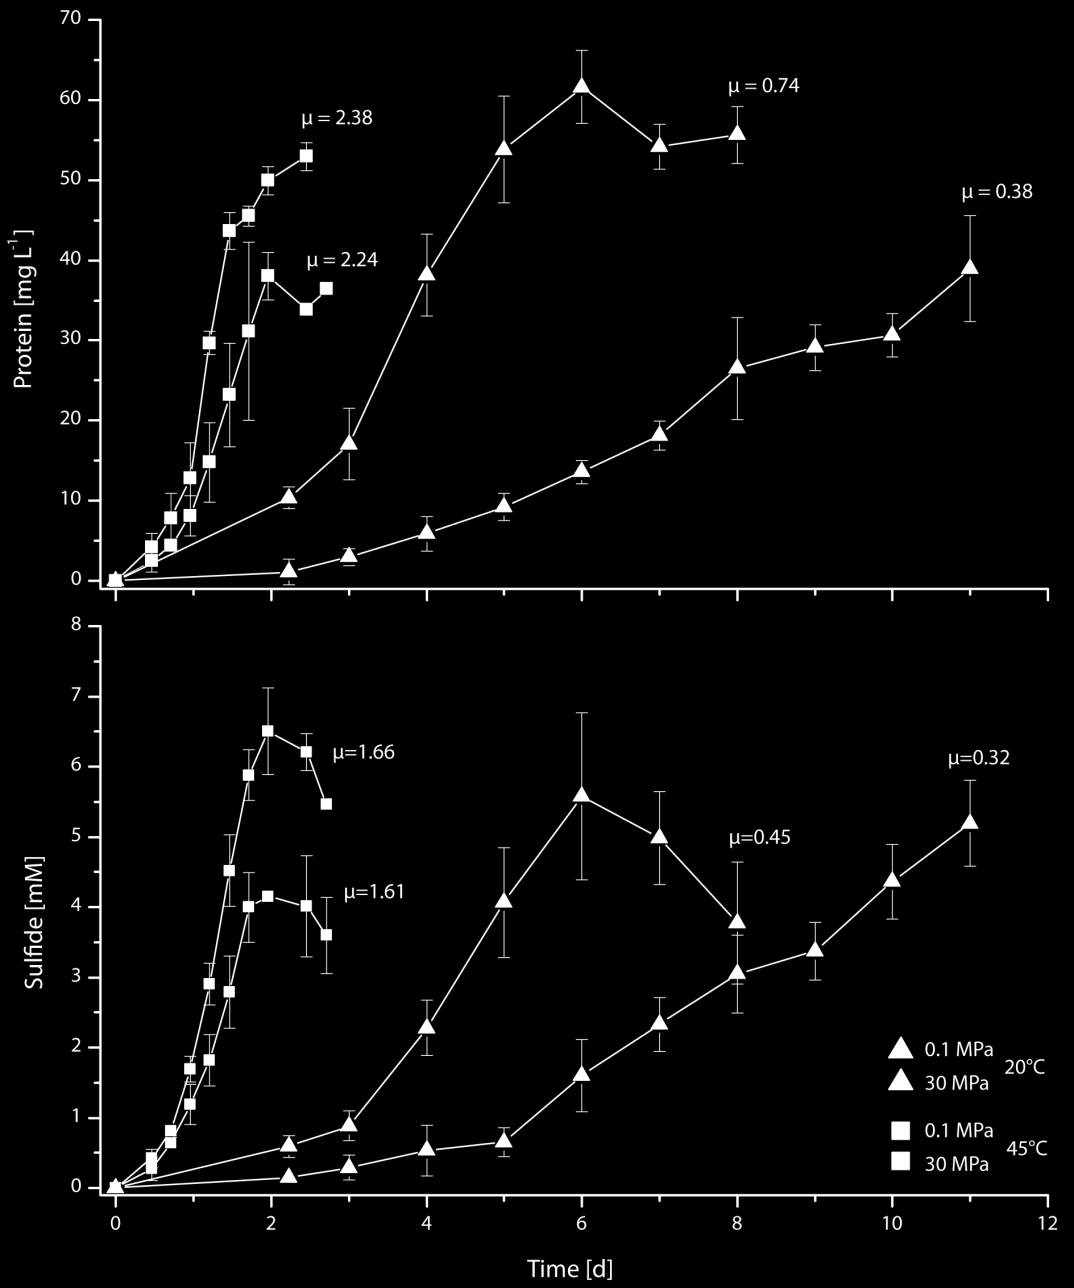 Fig. 4.3: Growth curves and rates of Dv. Indone nsiensis P23 Adaptation of growth and membrane lipid composition of a piezothermophilic sulfate reducer Fig. 4.3: Growth curves and rates µ [d -1 ] of strain P23 grown at atmospheric (0.